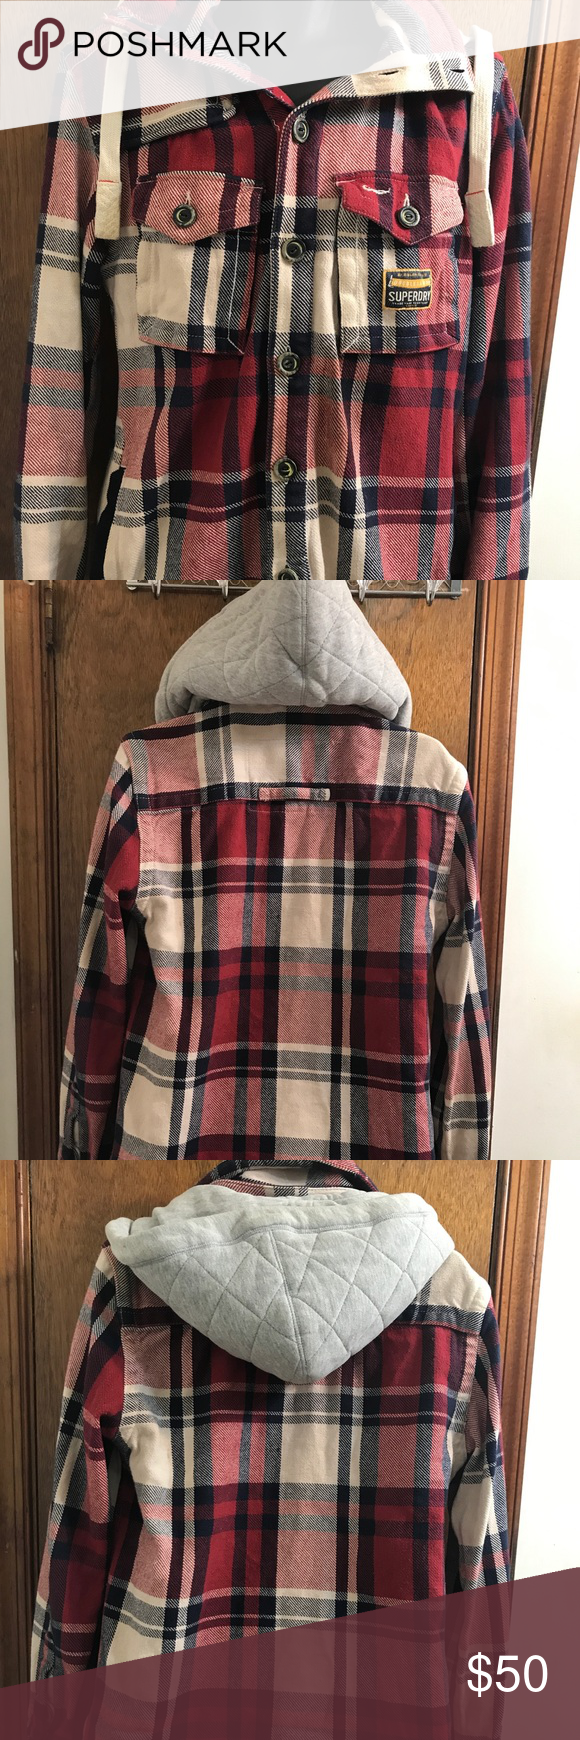 Off white flannel coat  Superdry The Huntsman Hoody Vtg Thick Shirt Jacket Superdry The